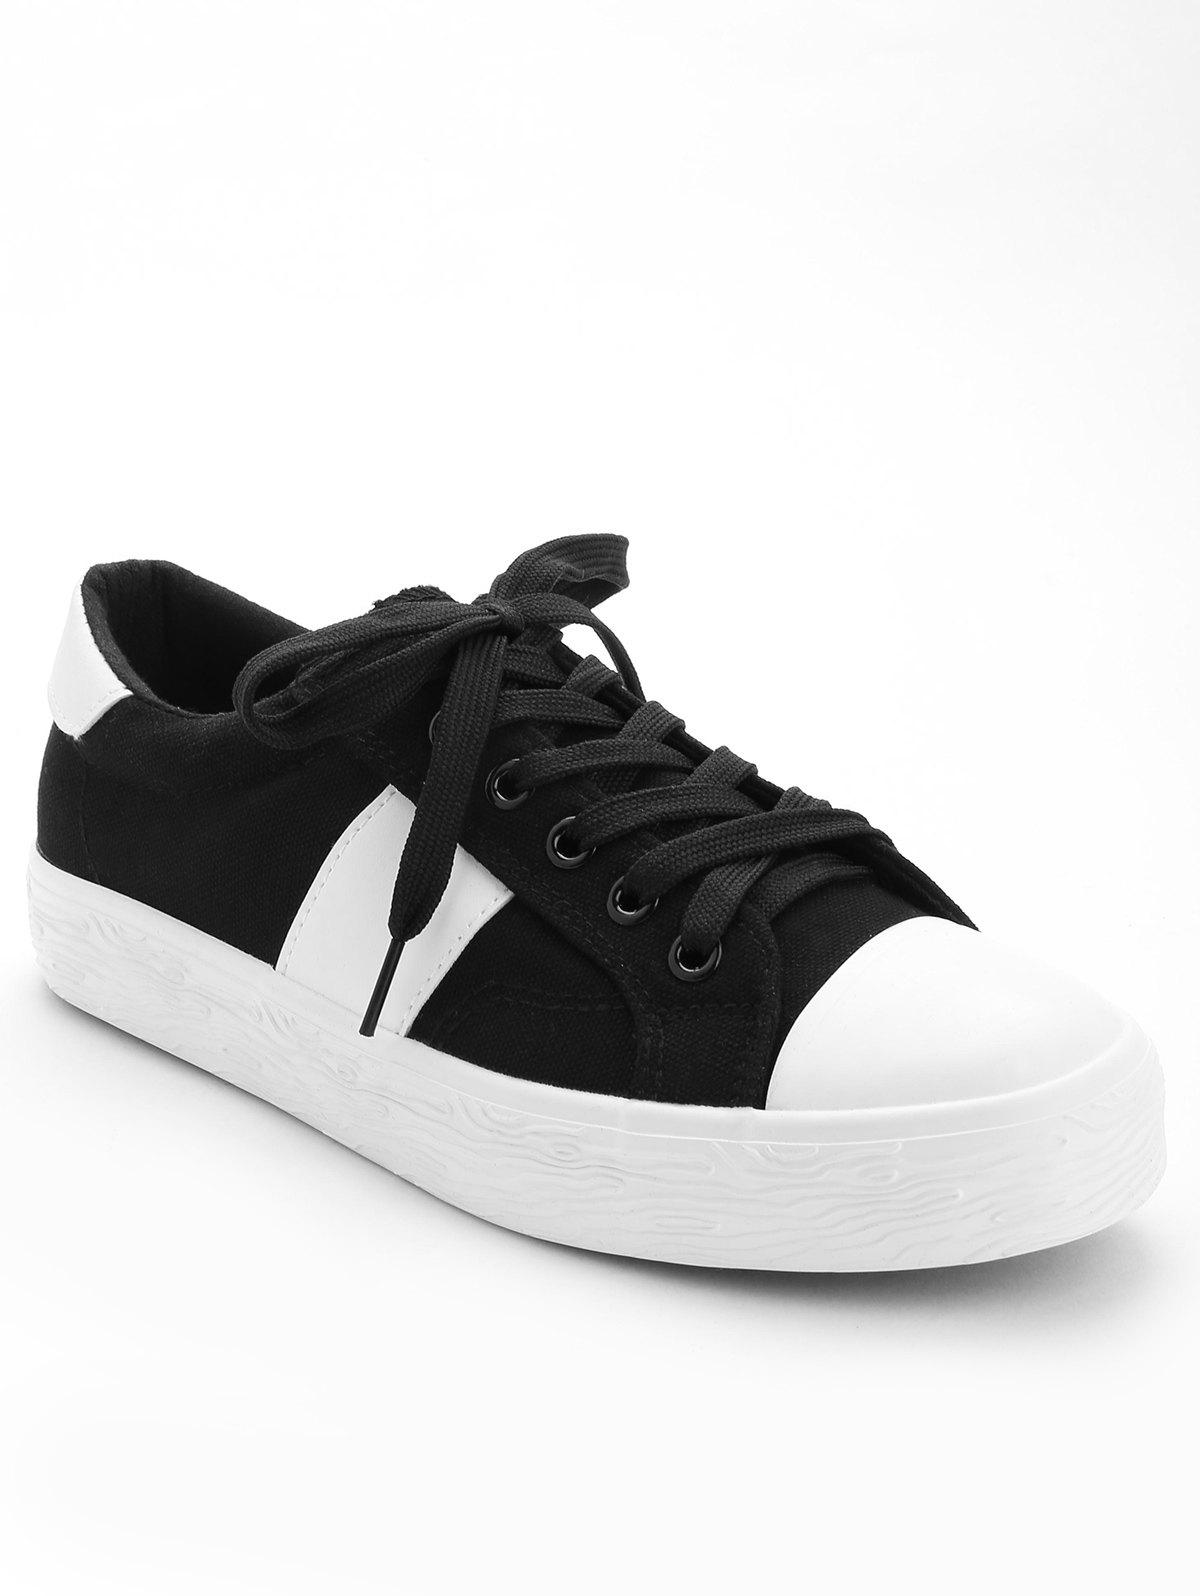 Casual Color Blocking Skate Shoes - BLACK 37